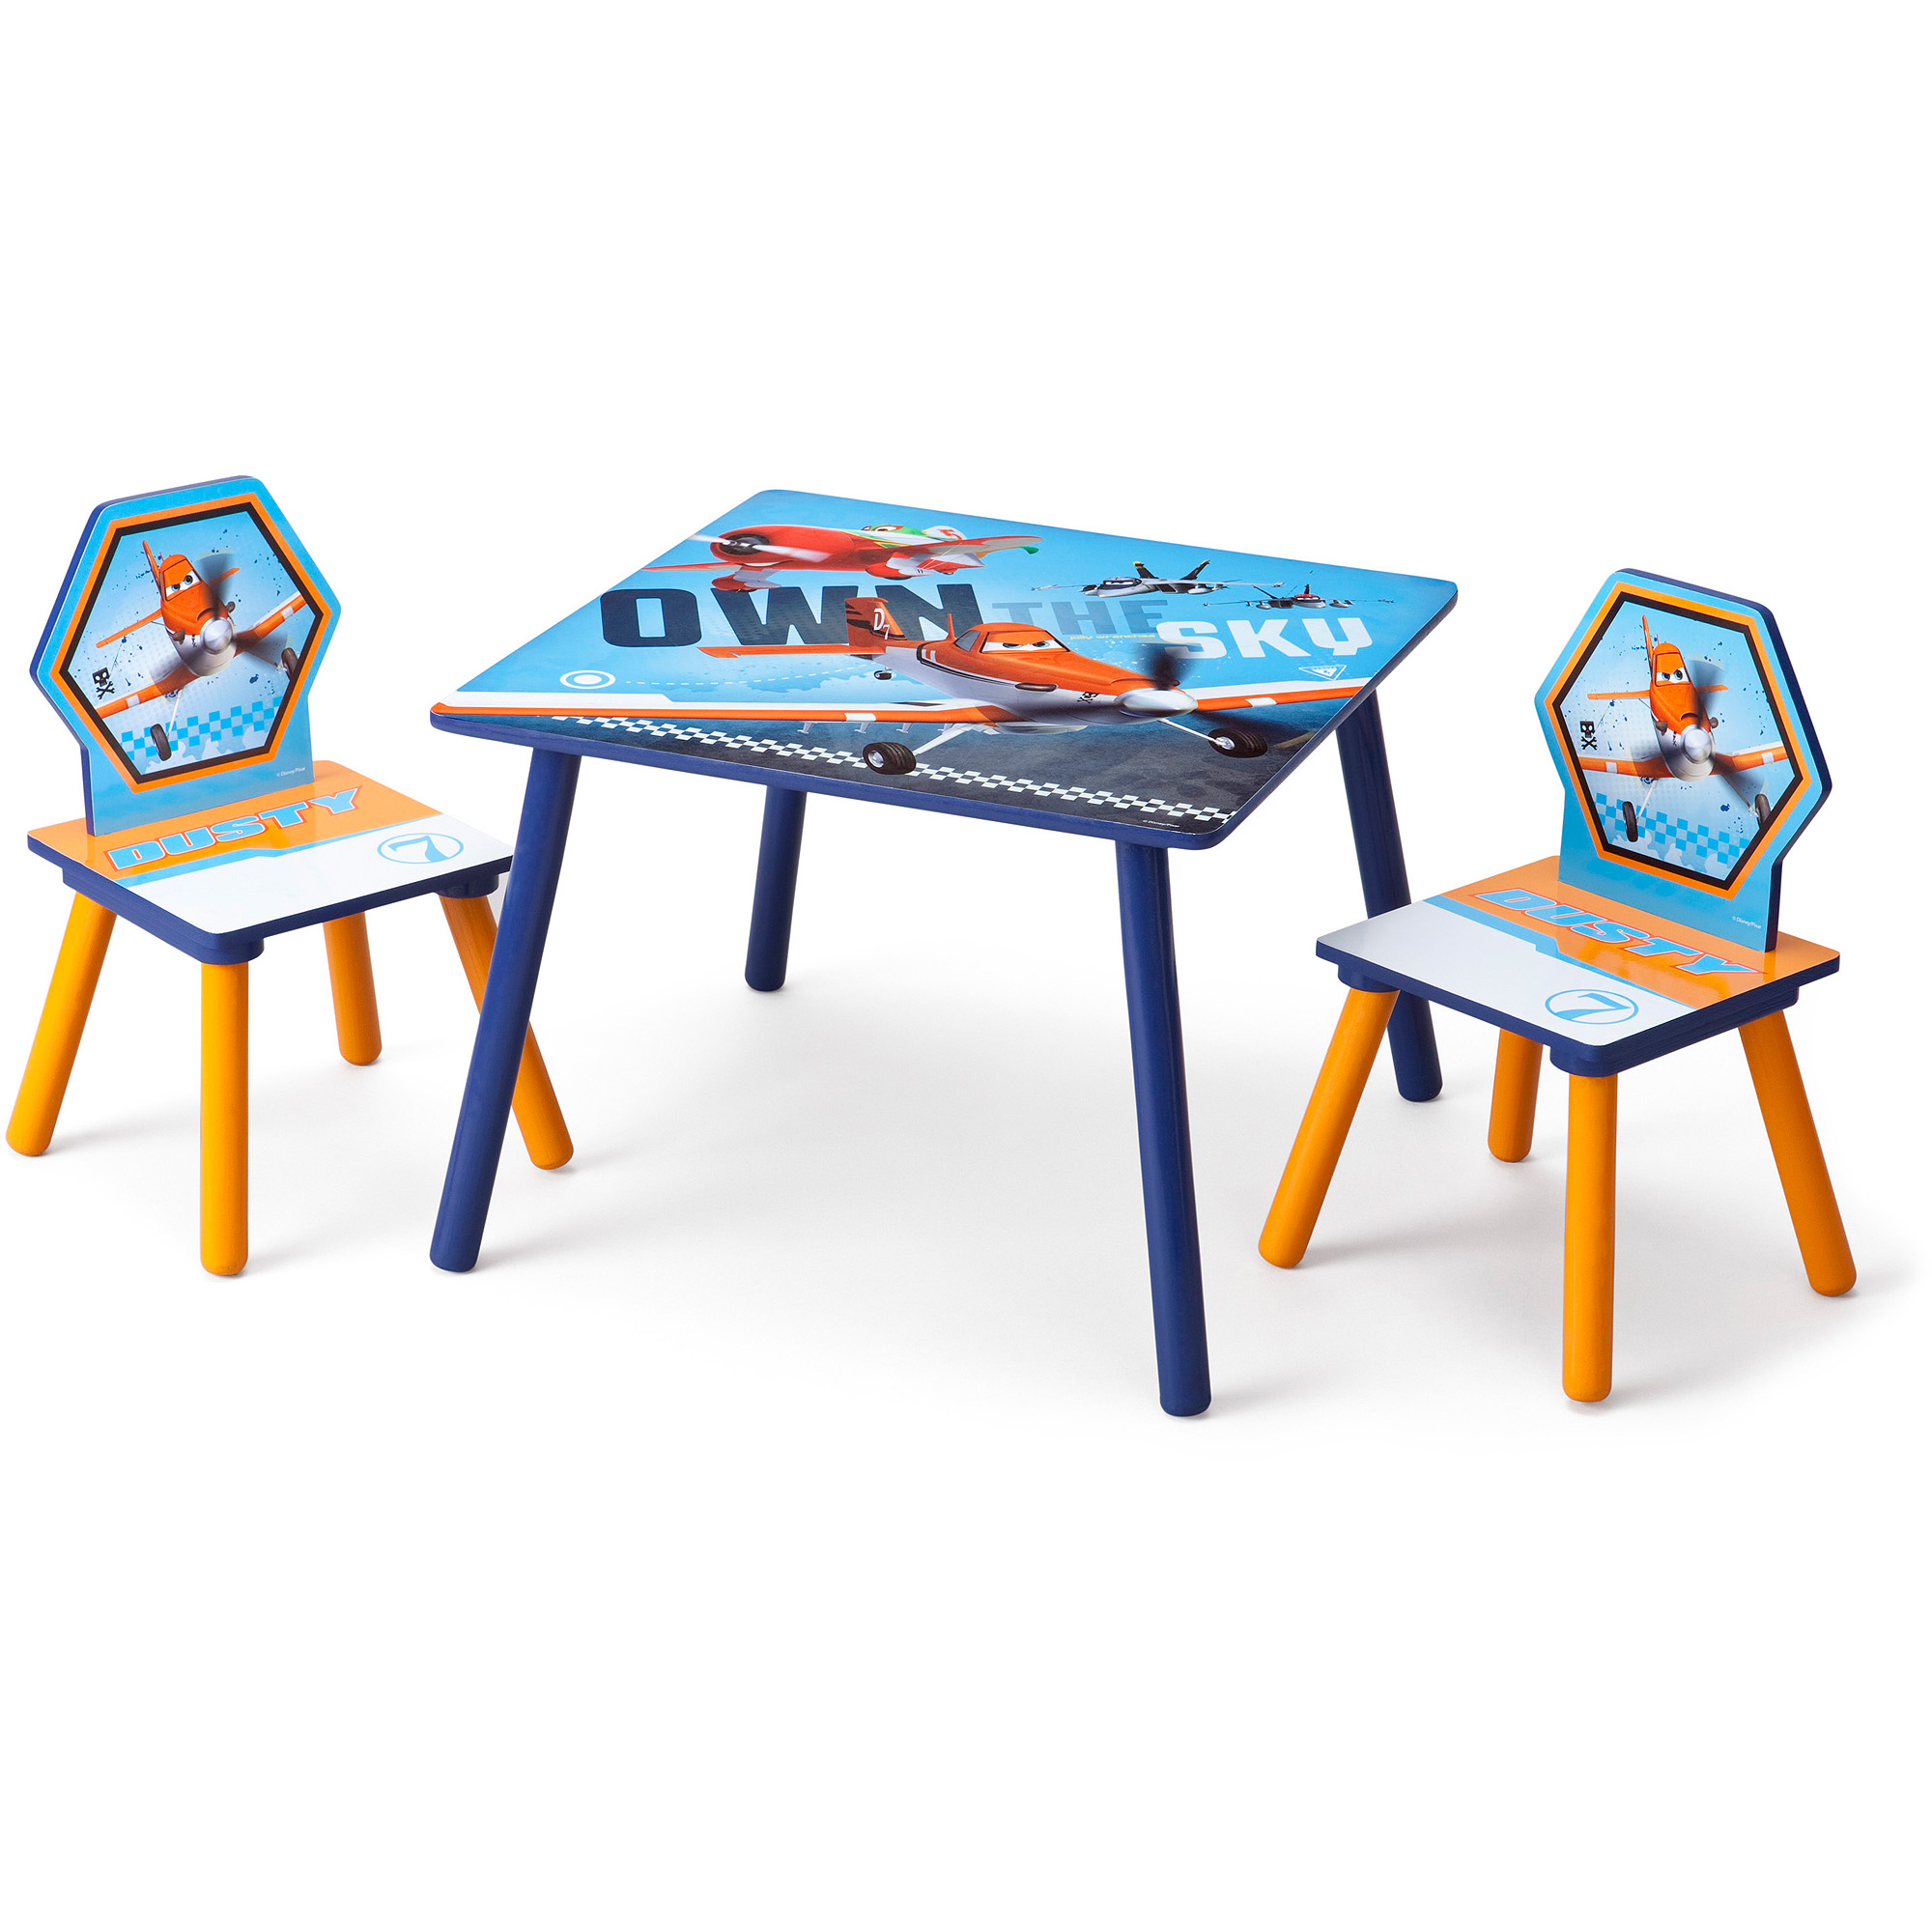 Disney Pixar Planes Table Chairs Com  sc 1 st  Bedroom Design Ideas & Disney Planes Bedroom Set - Bedroom Design Ideas